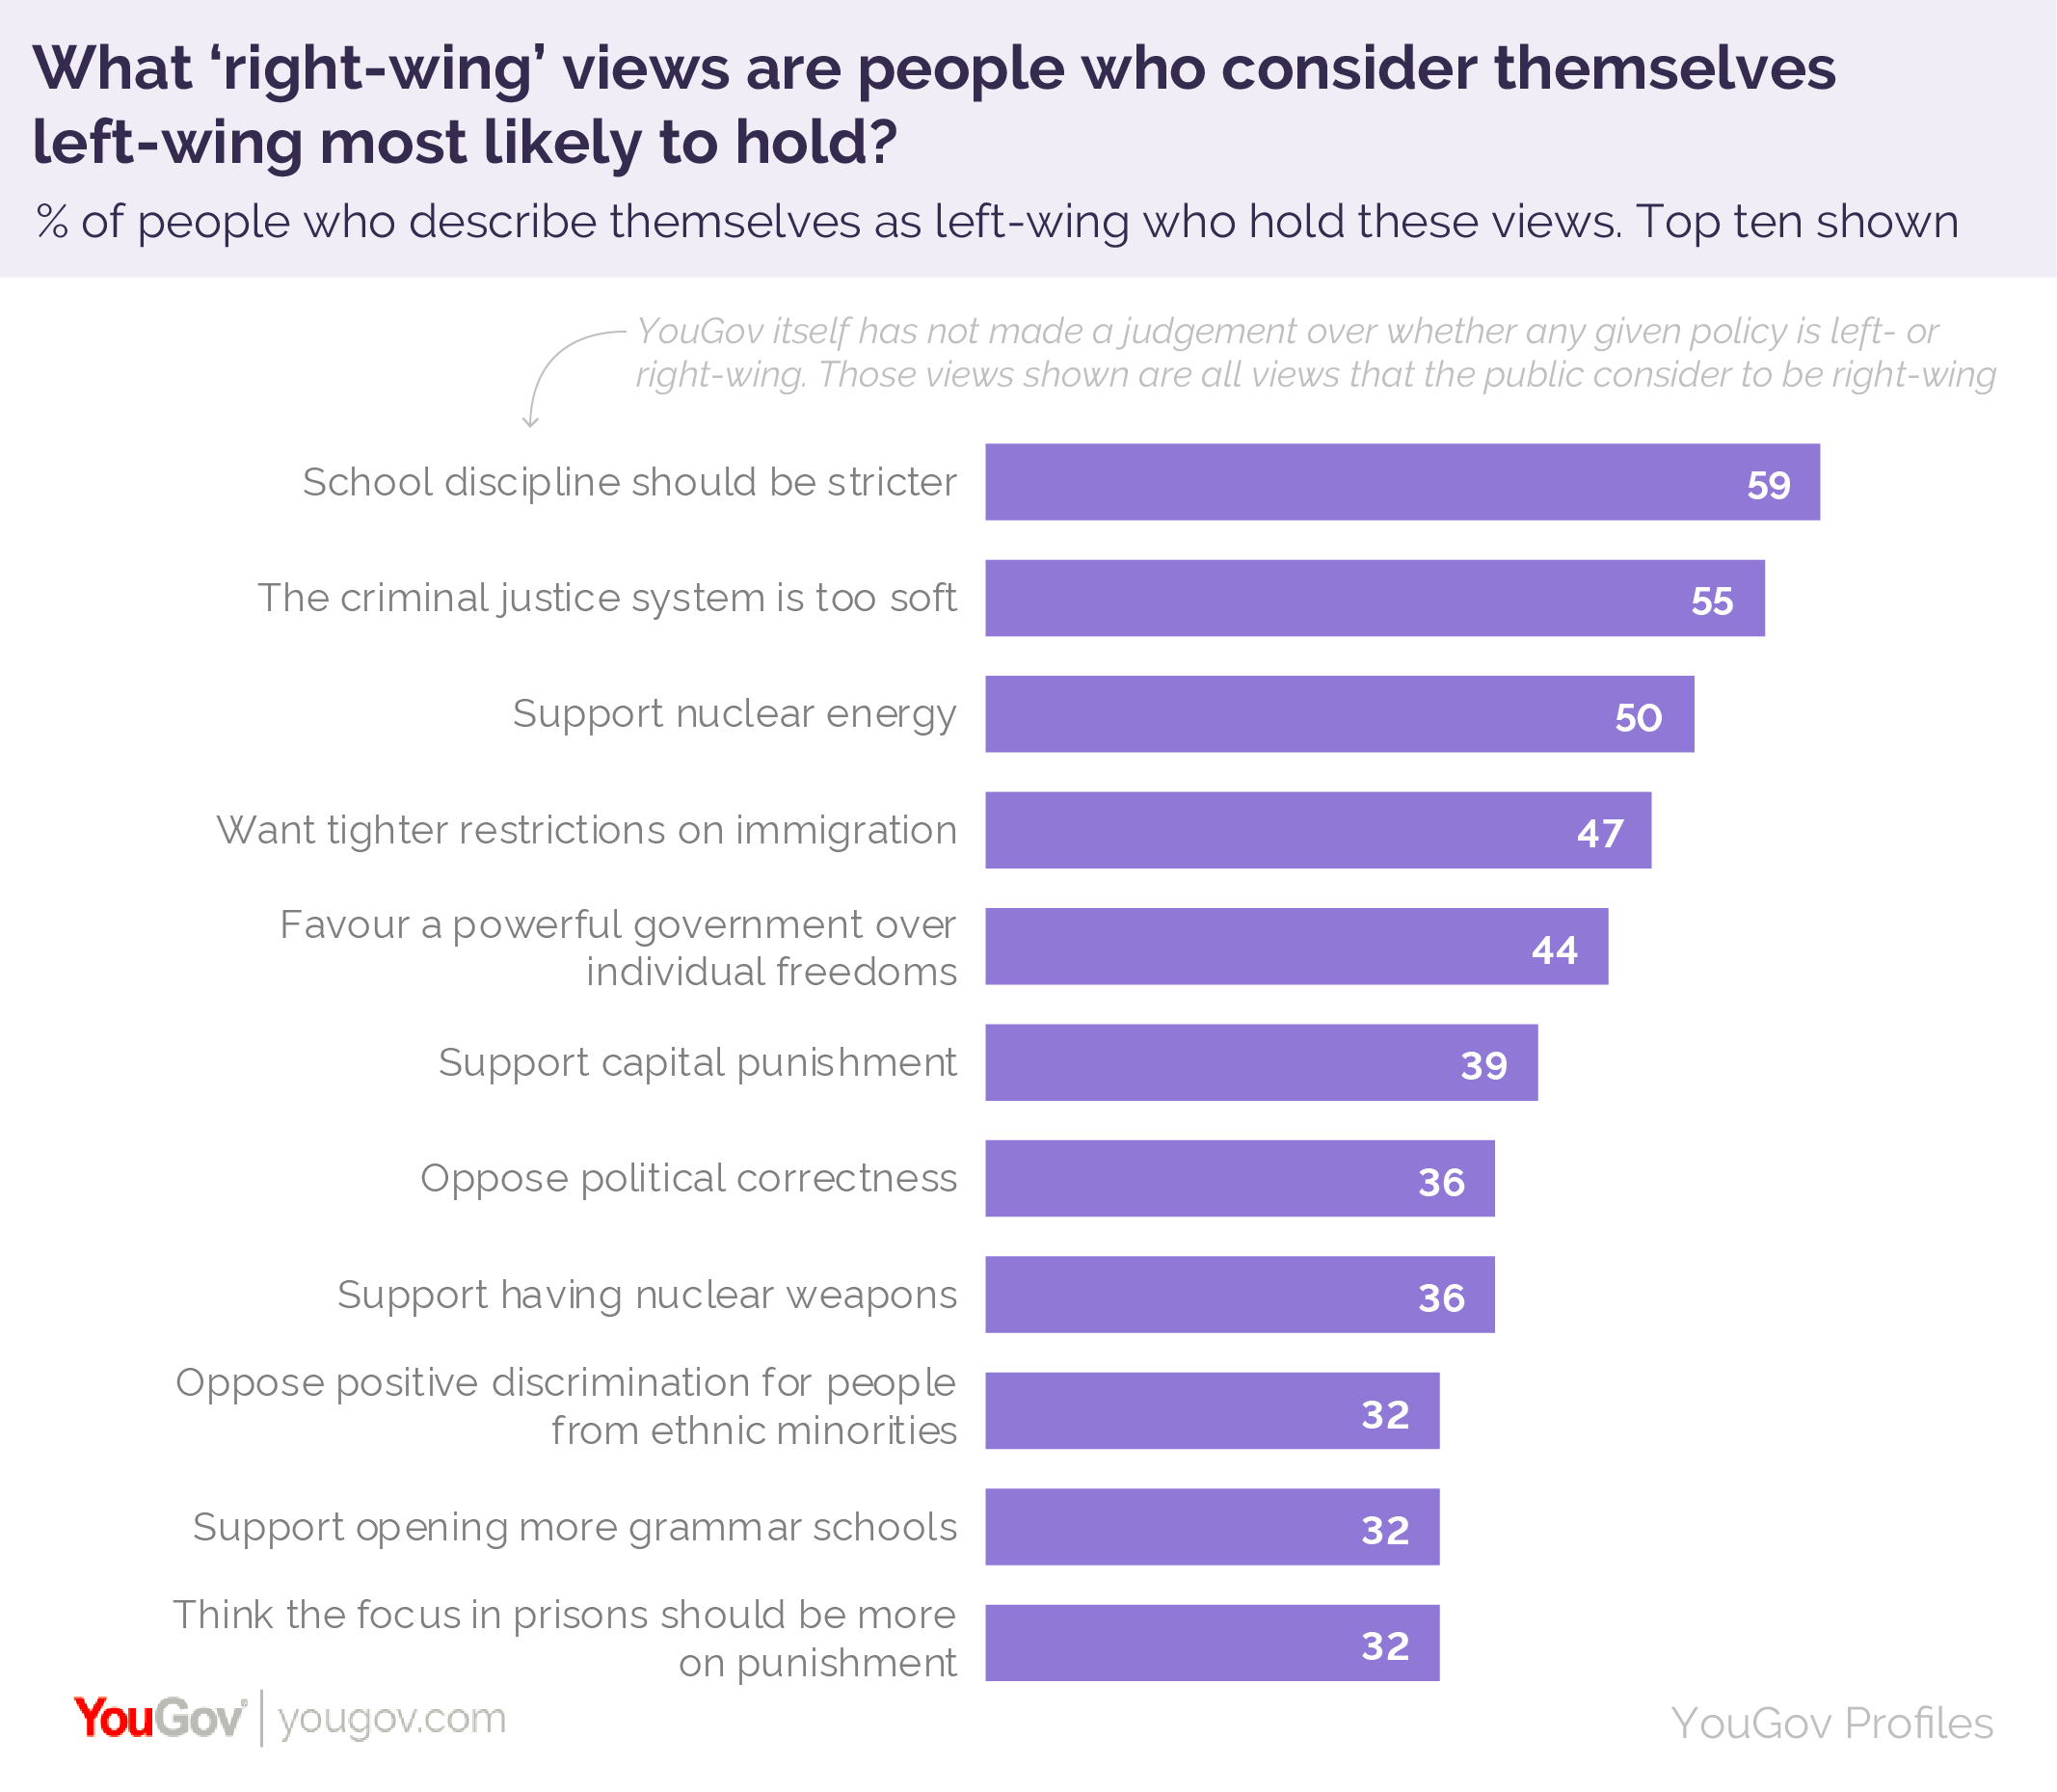 Counterintuitive views right held by left-01.png